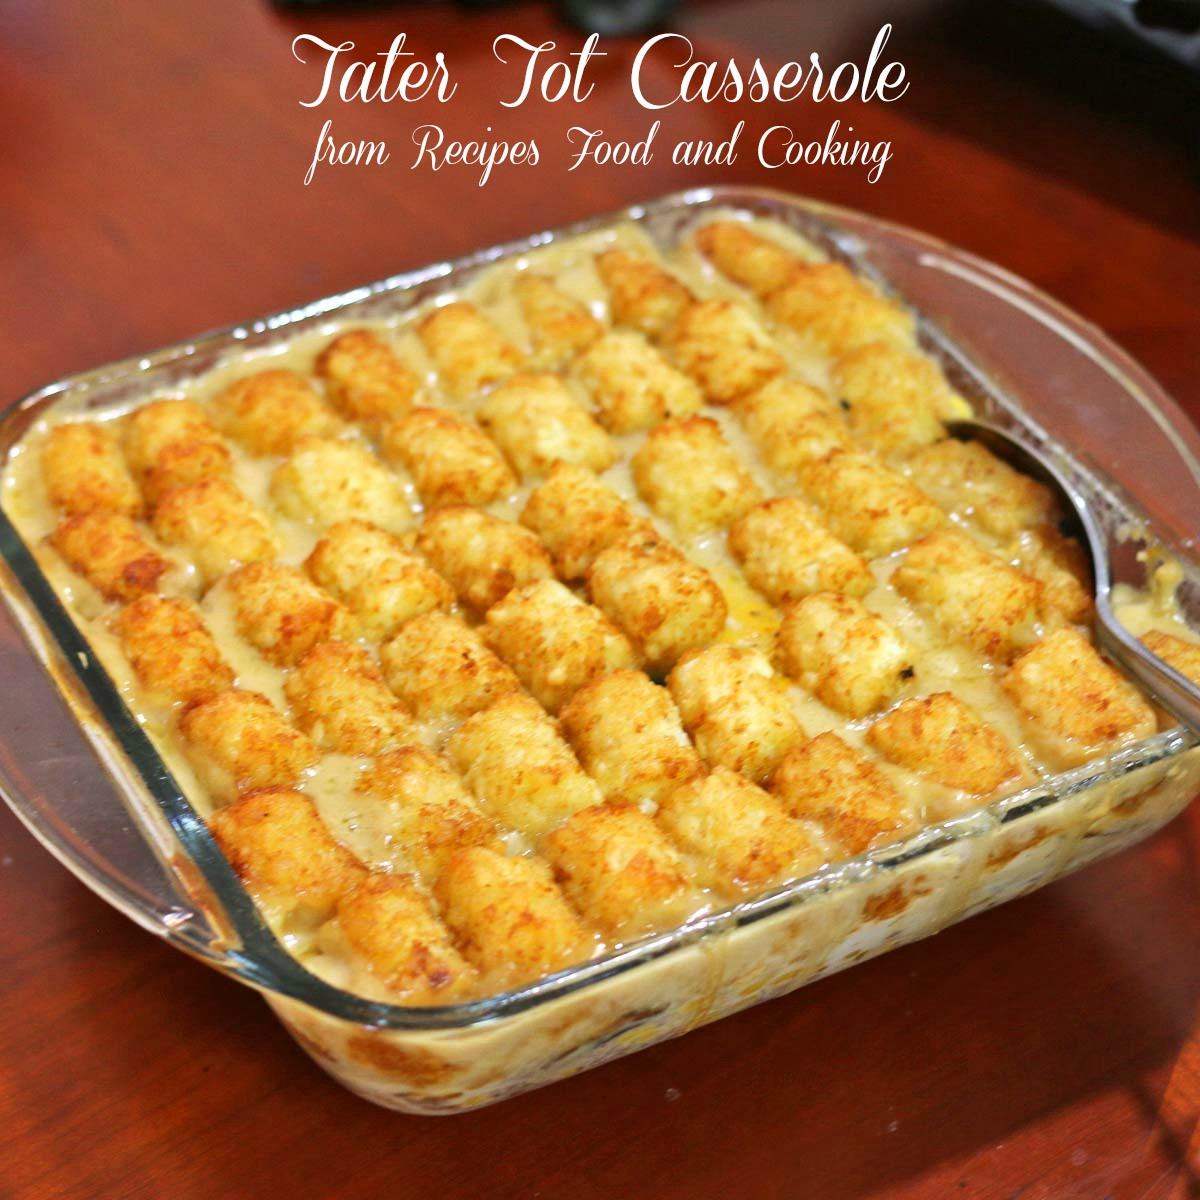 Tater Tots Casserole  Tater Tot Casserole Recipes Food and Cooking